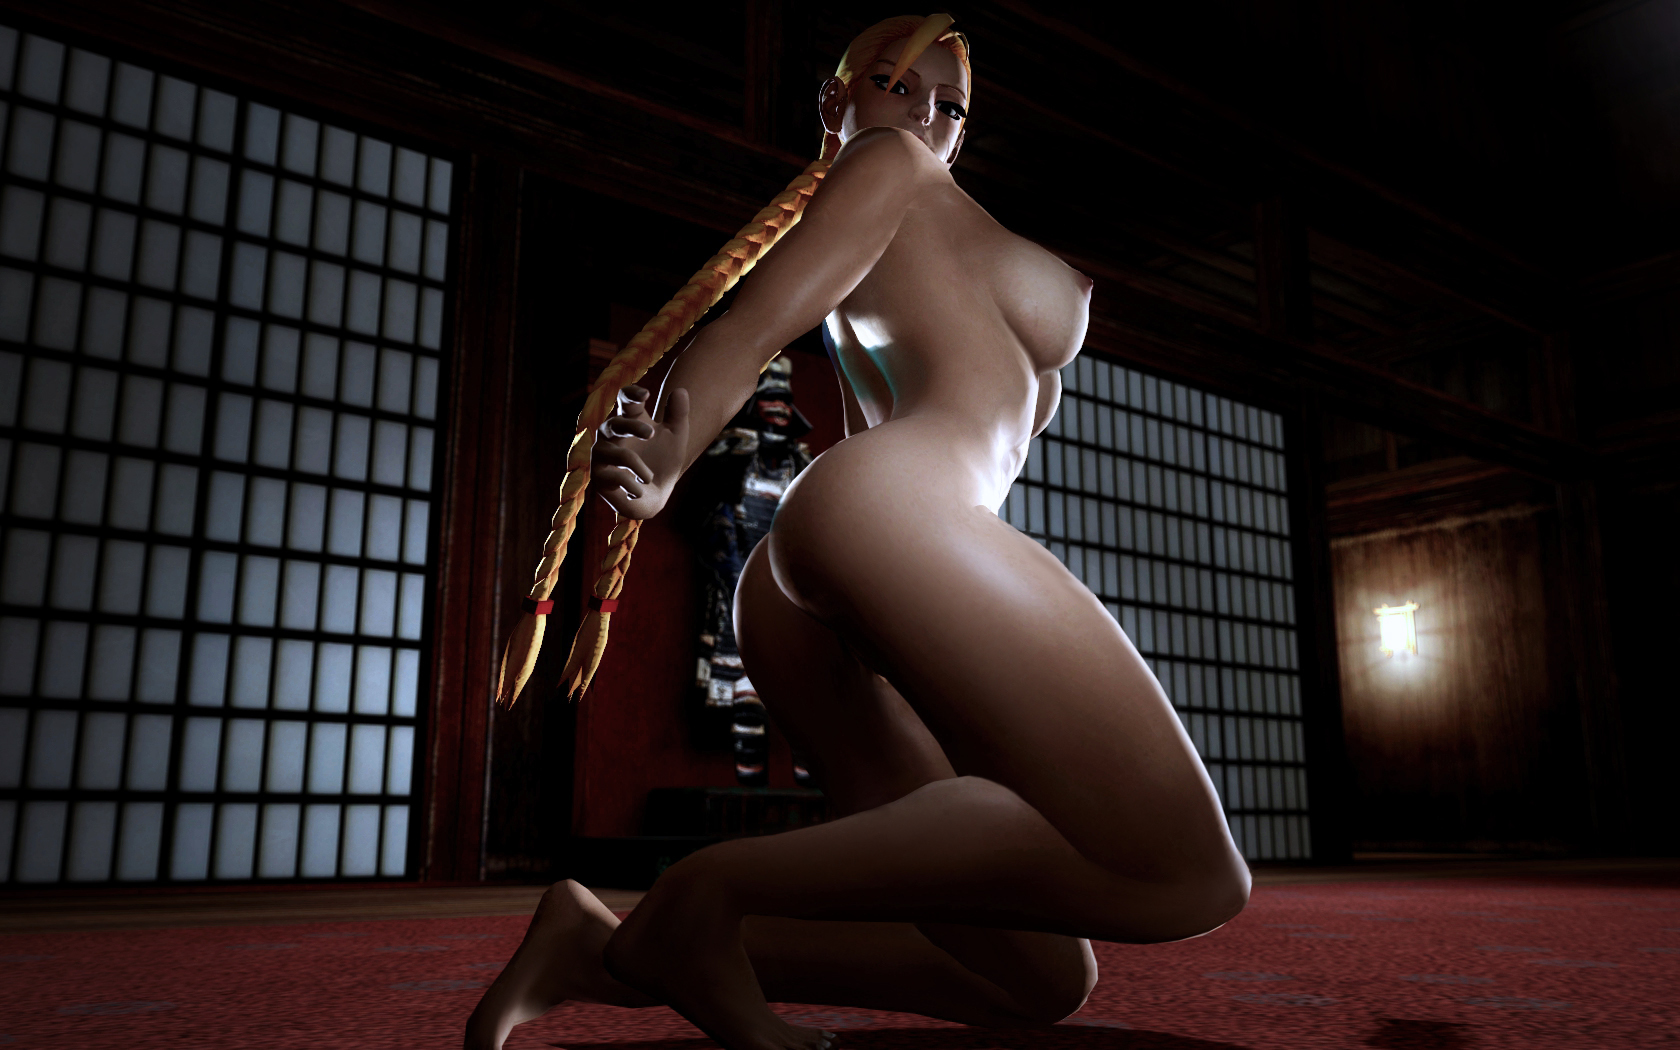 Cammy nude garrys mod softcore streaming